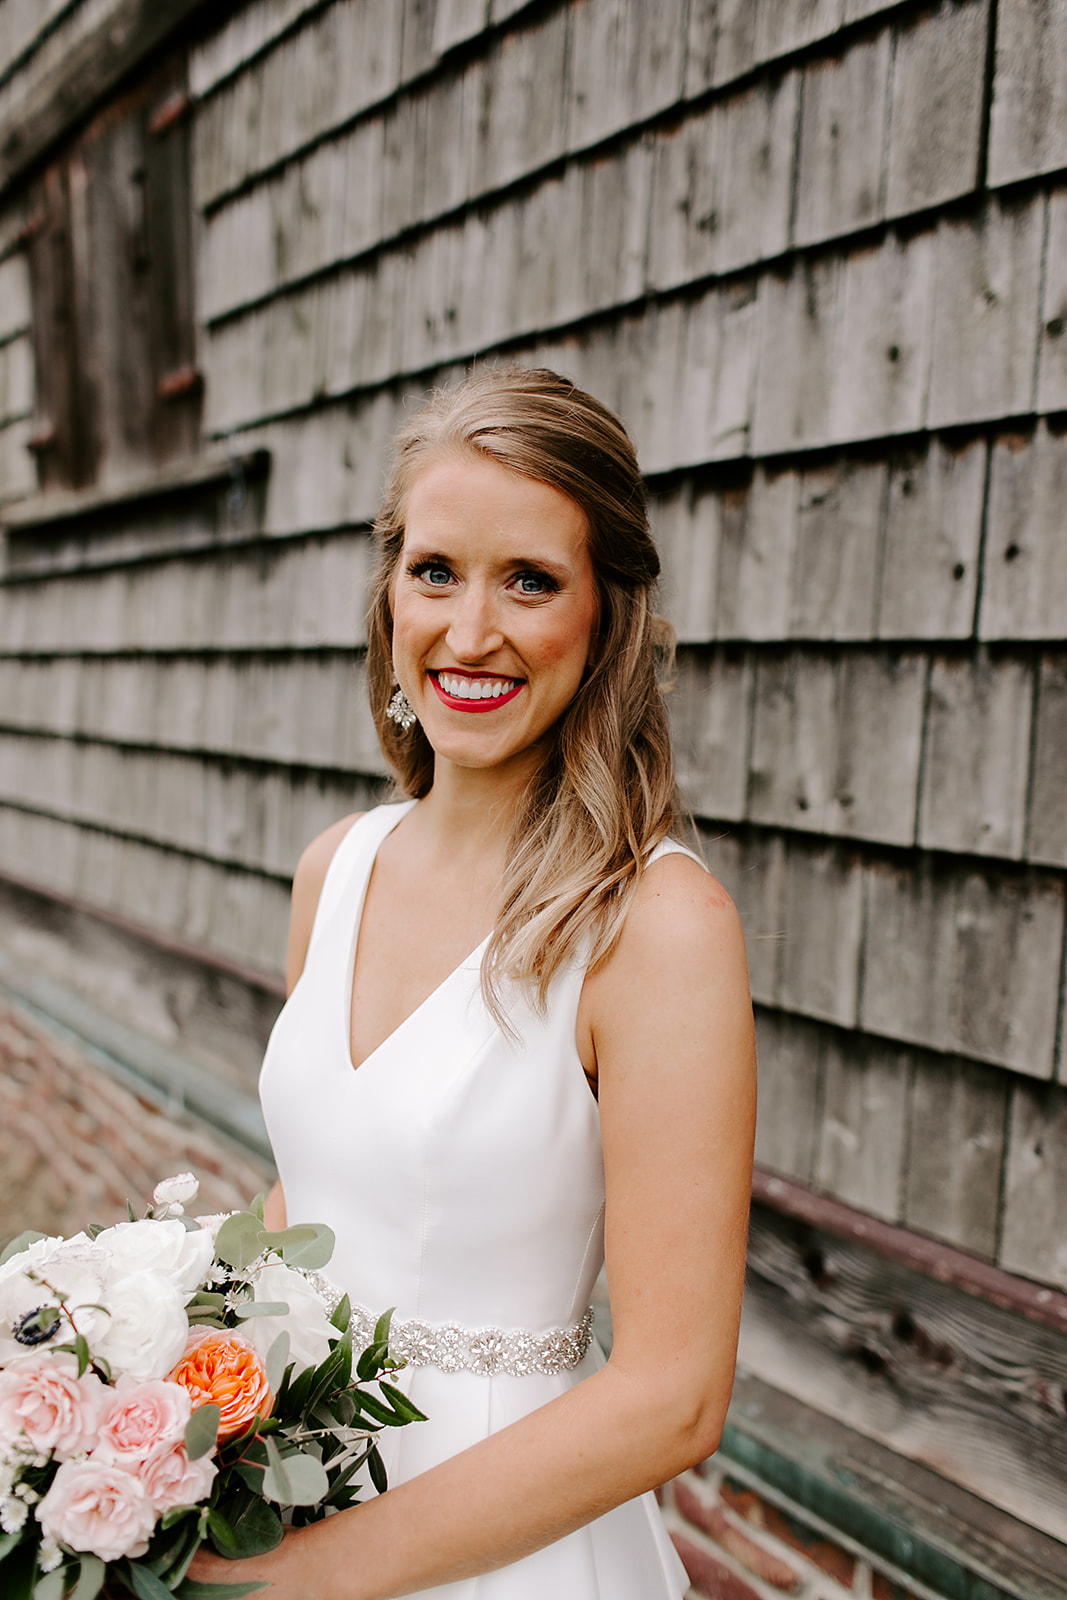 Bridal portrait with wedding flowers inspiration | Emily Wehner photography, Indiana wedding photographer